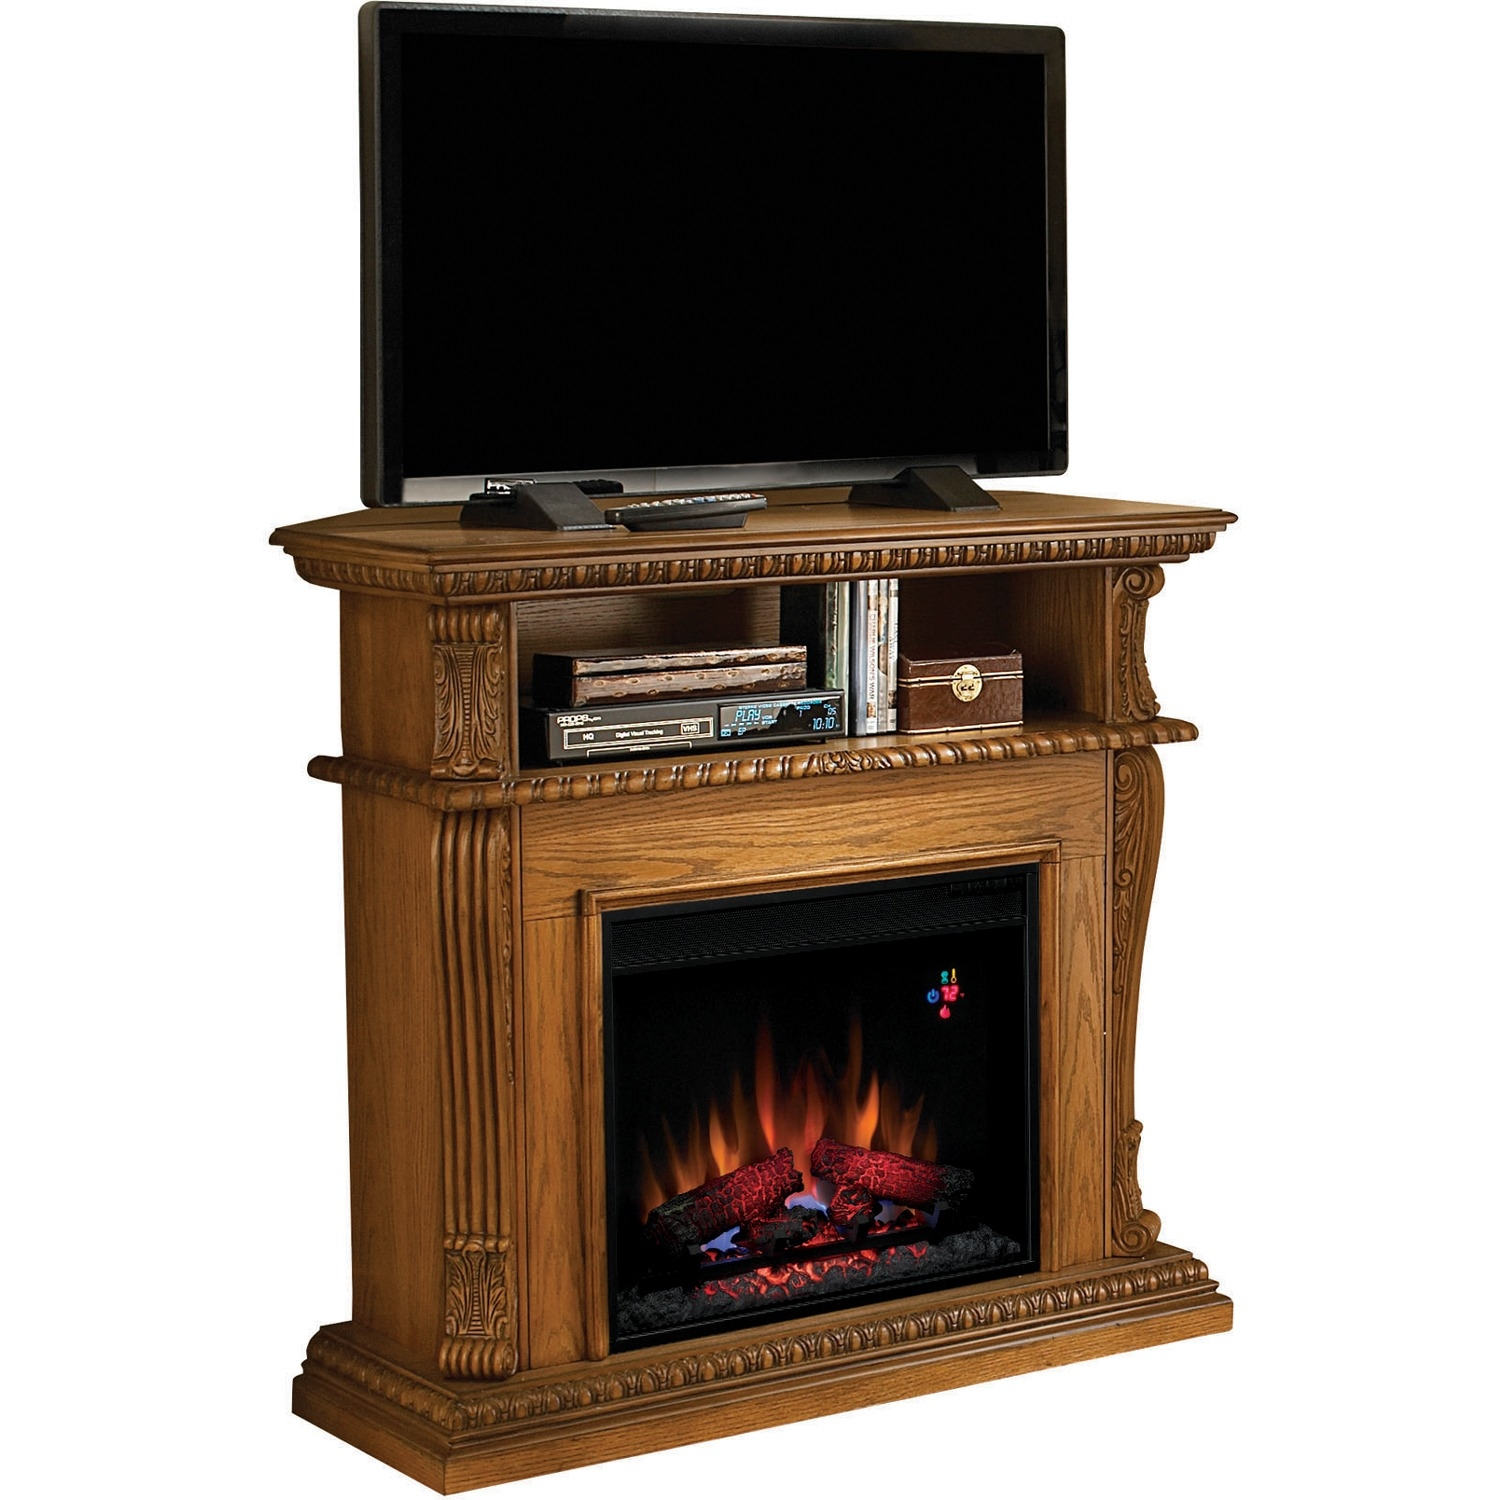 23DE1447-O107 Corinth 23 Electric Fireplace with 100% Ene...